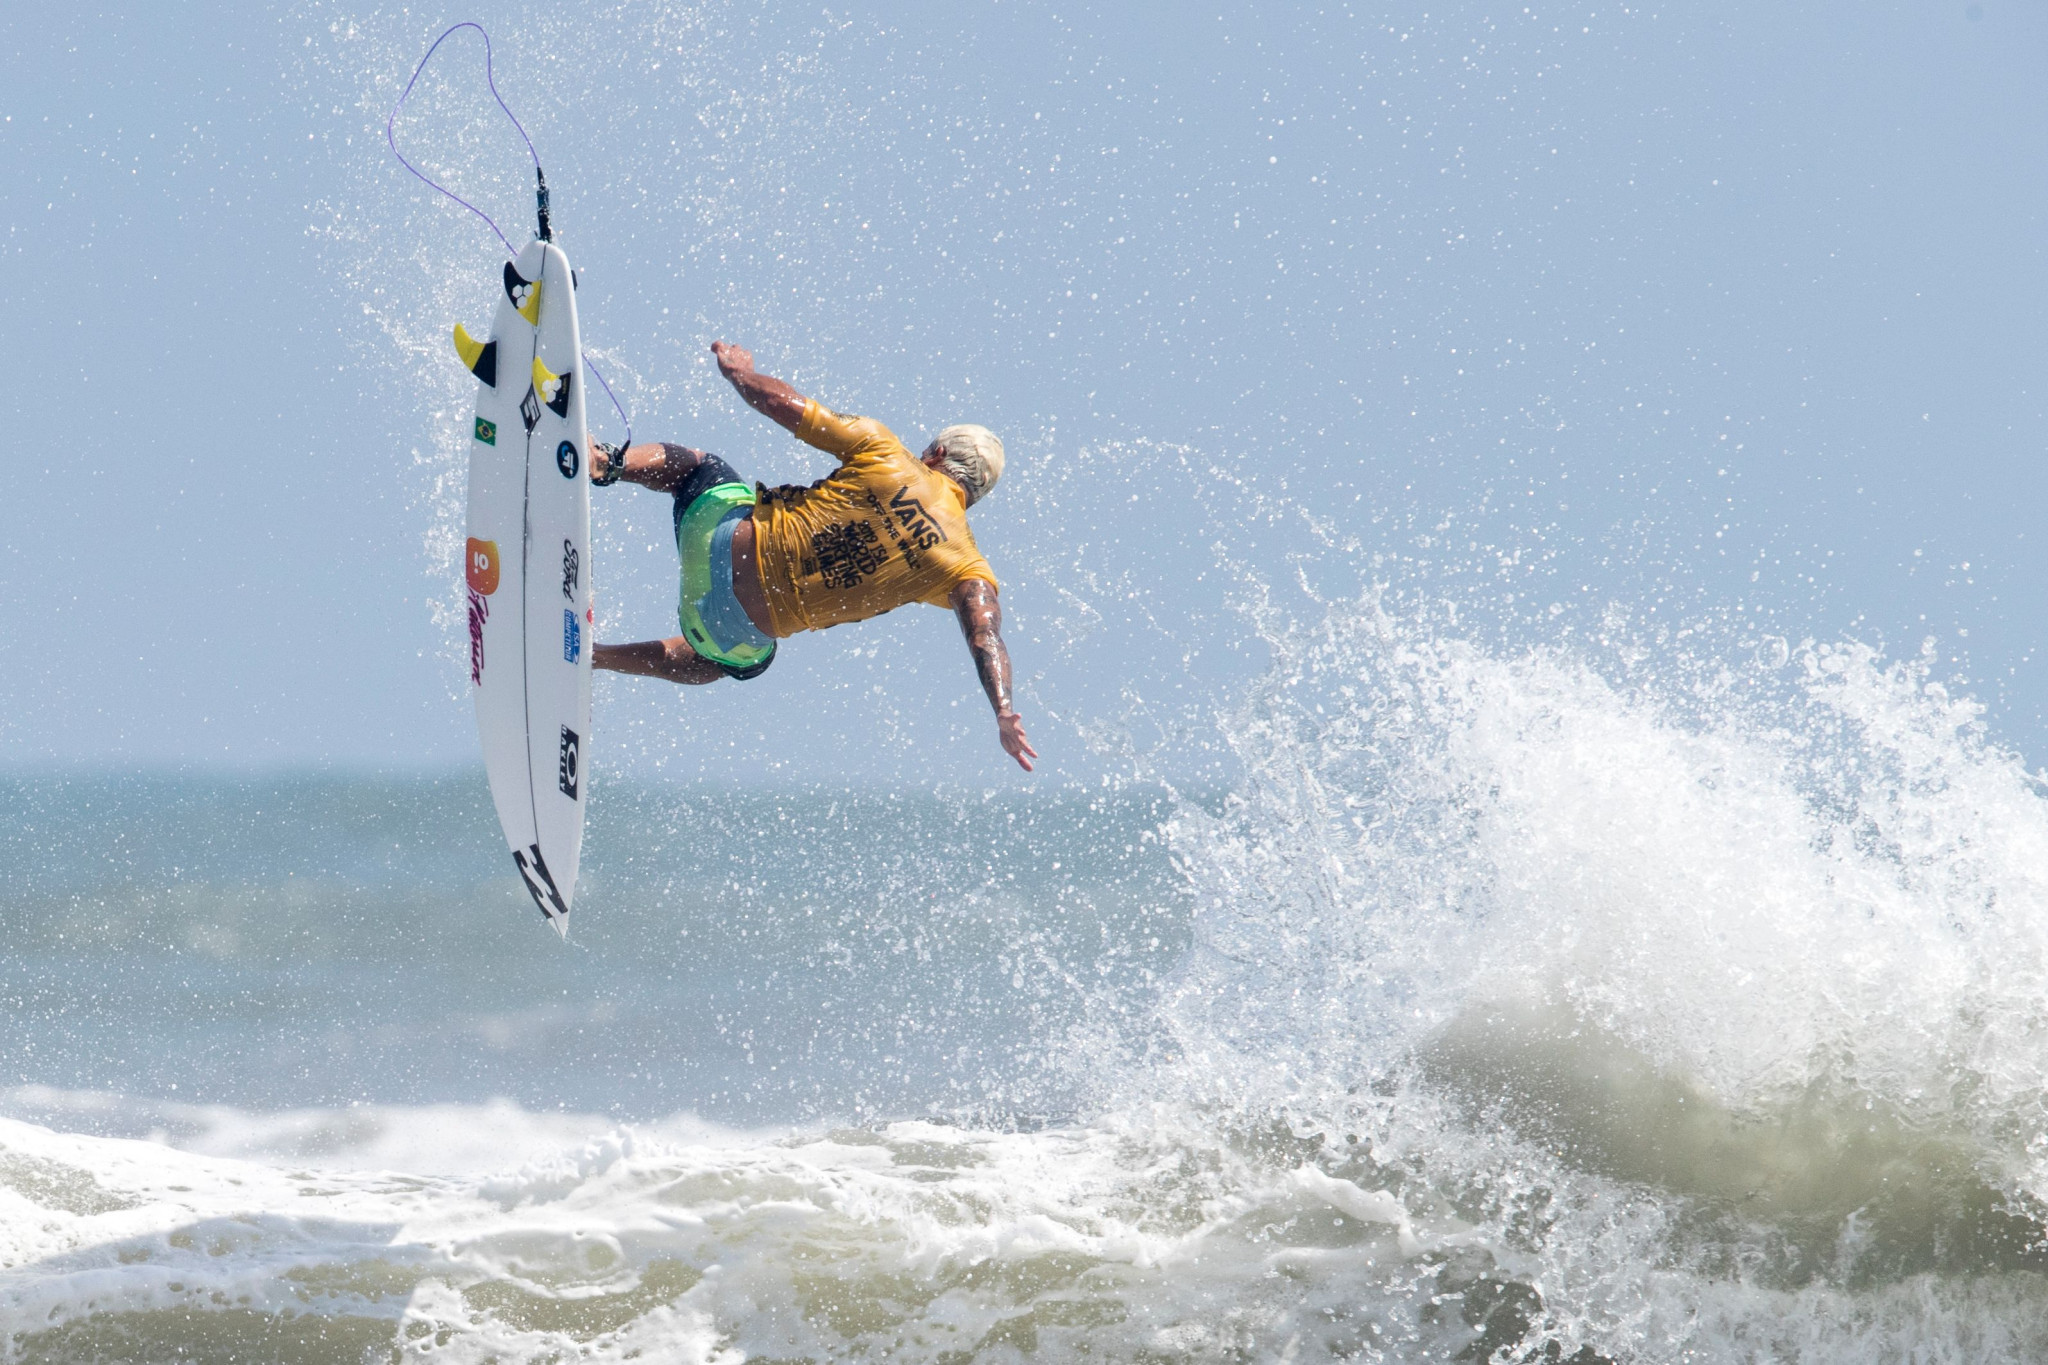 ISA underlines commitment to staging World Surfing Games with publication of COVID-19 protocols